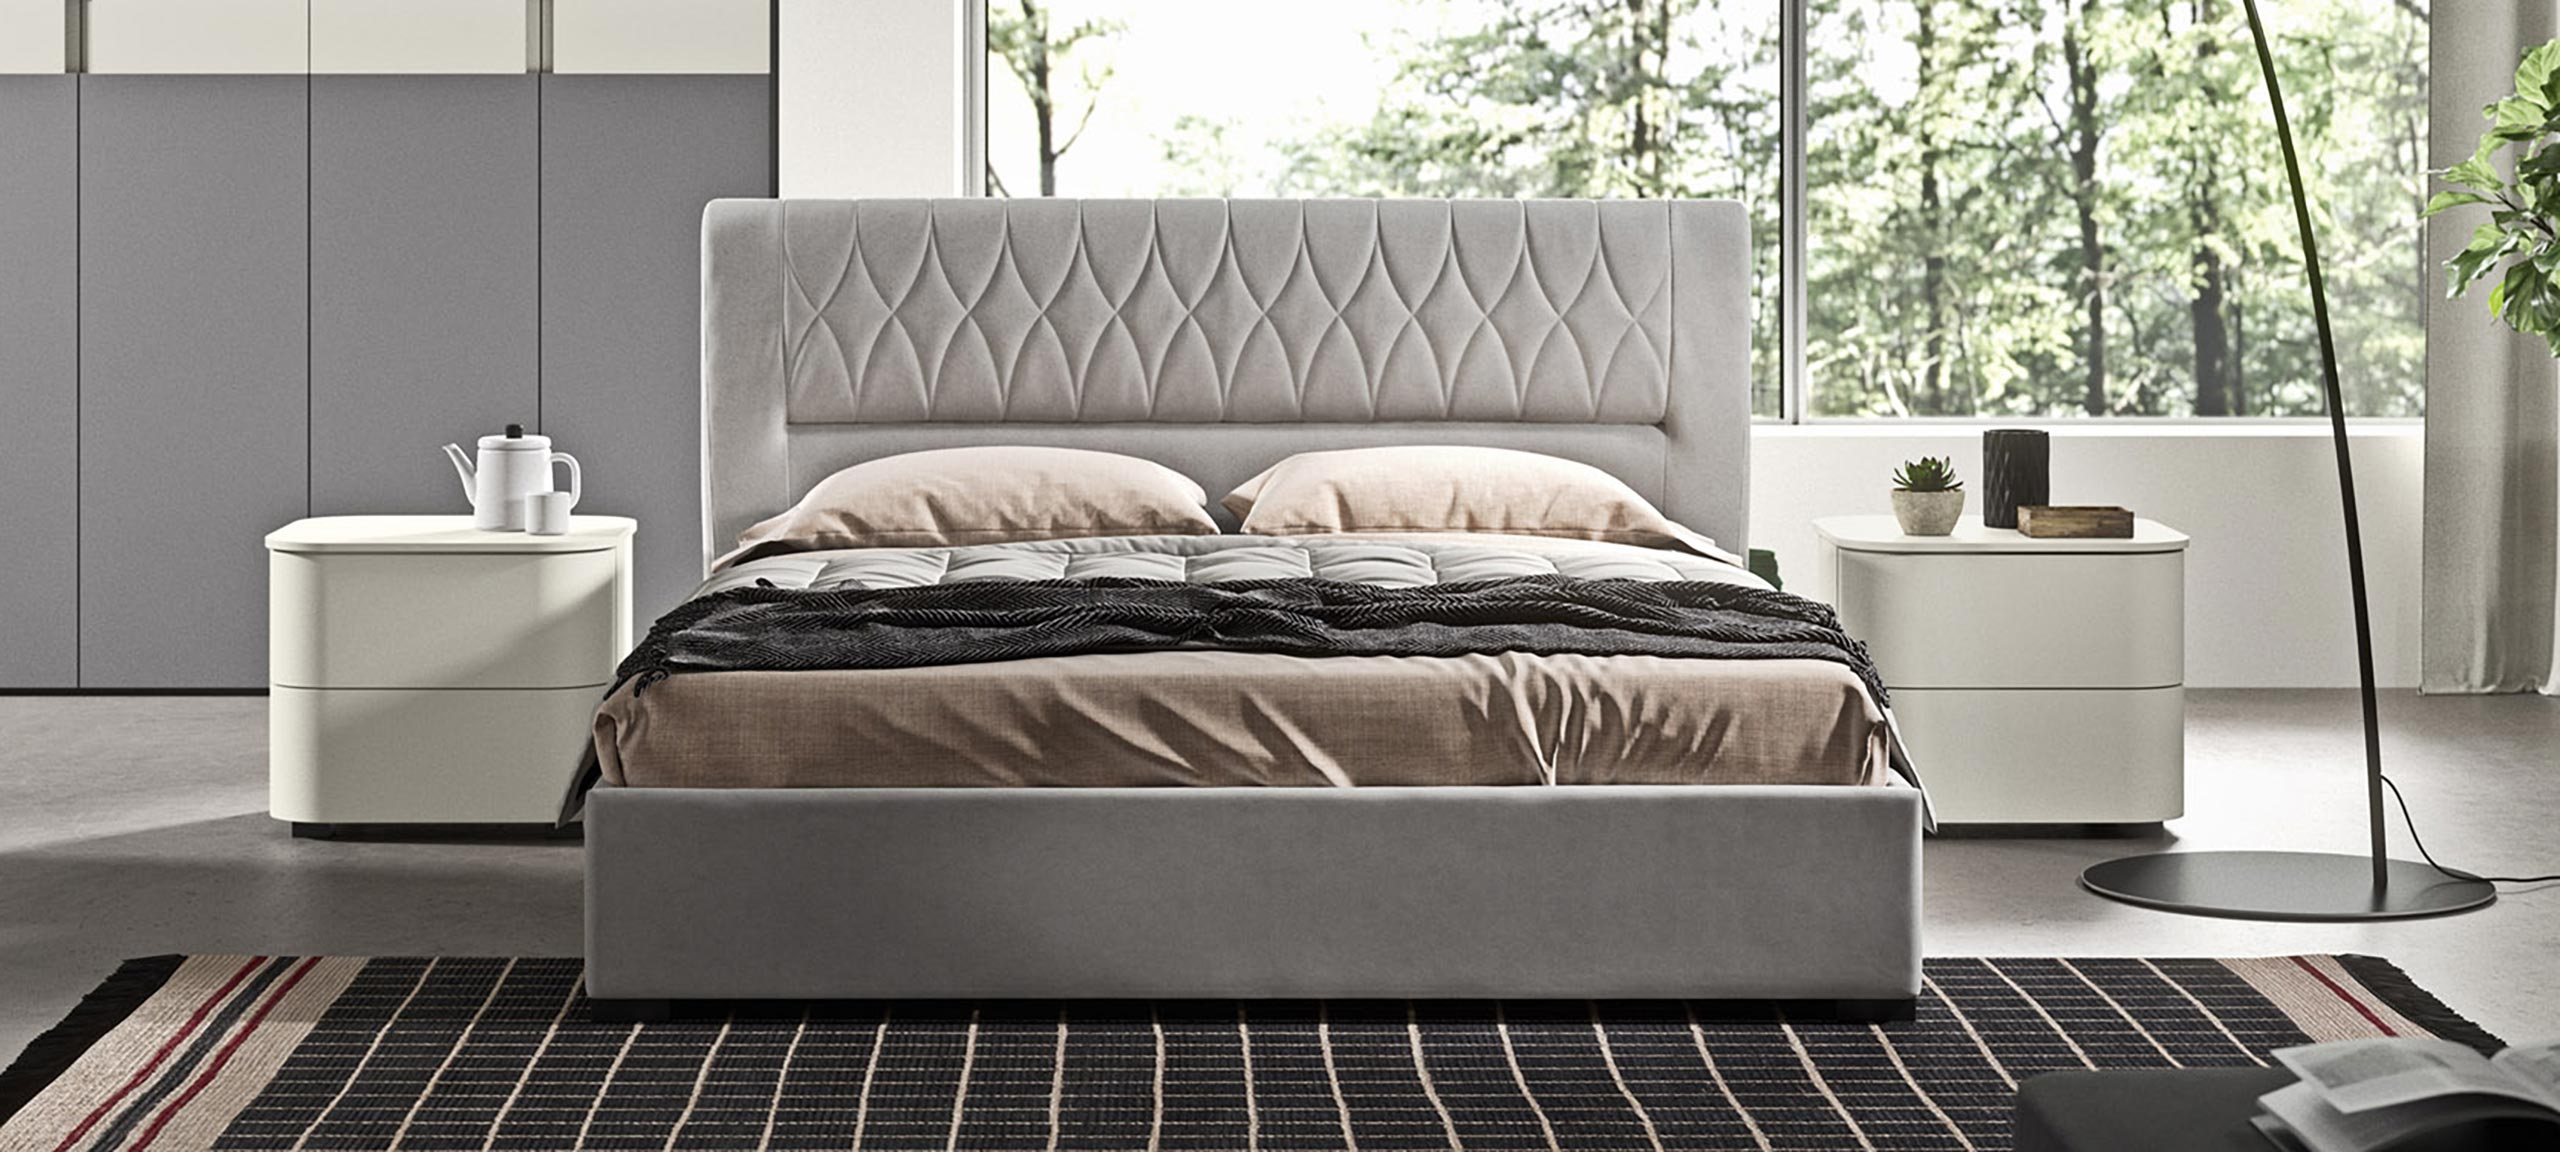 faux leather double bed with container 4